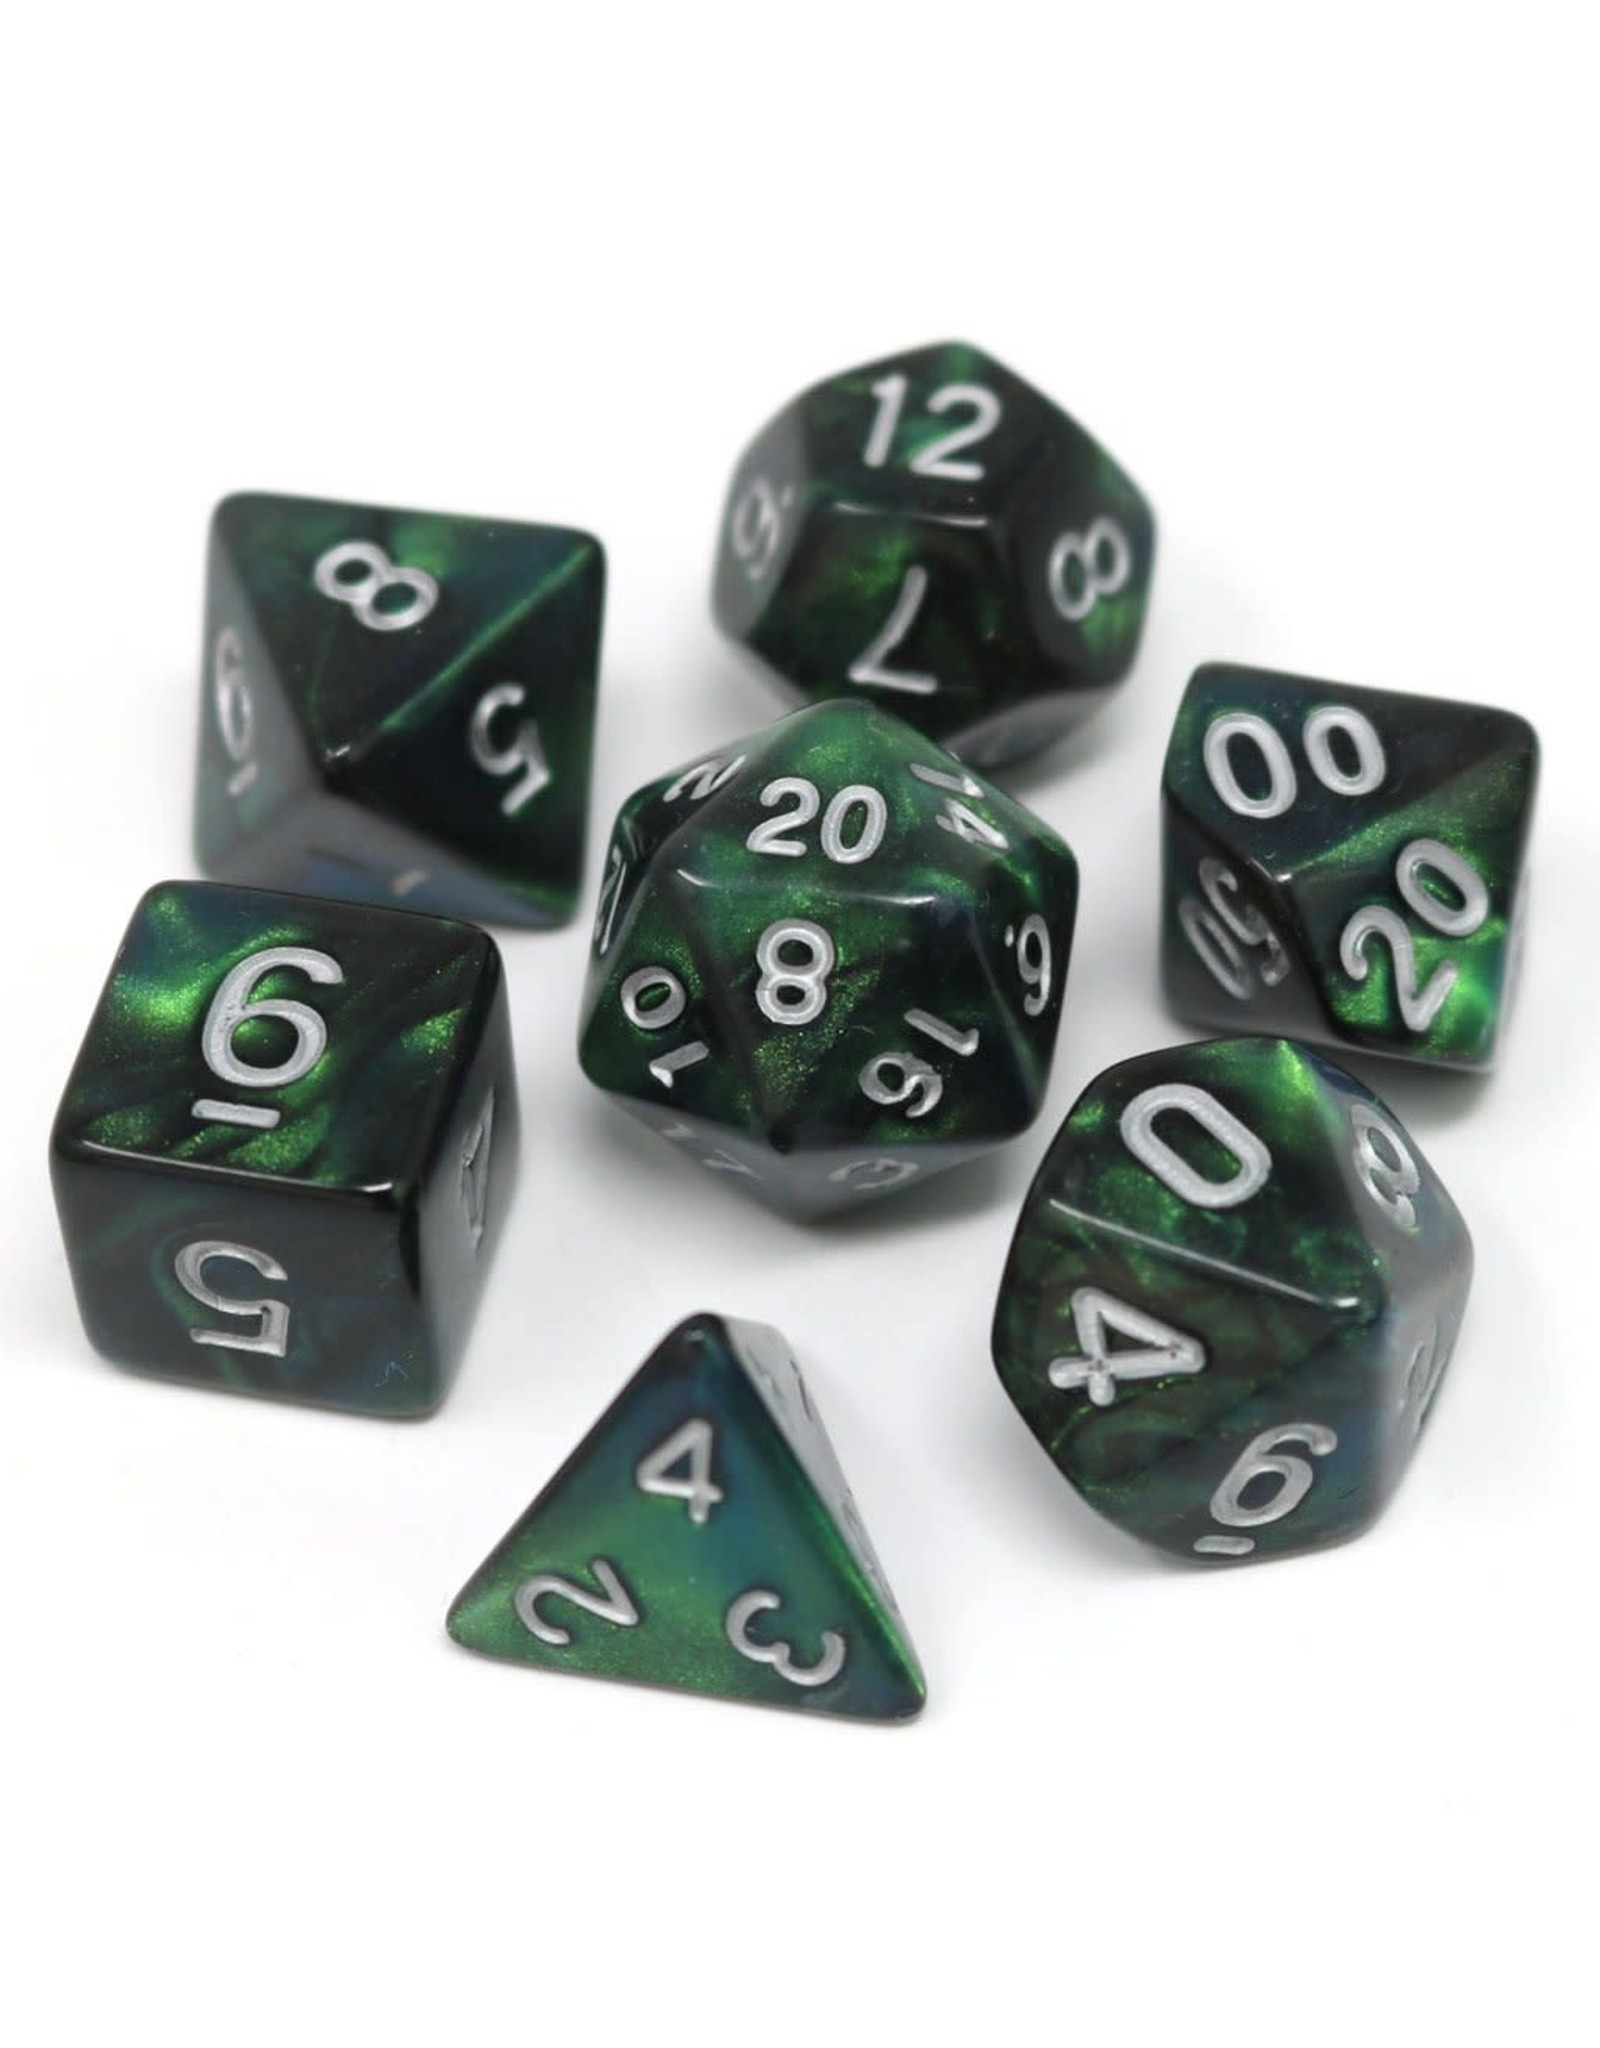 DIE HARD DICE DIE HARD DICE 7 CT RPG DICE SET - SPRING EQUINOX